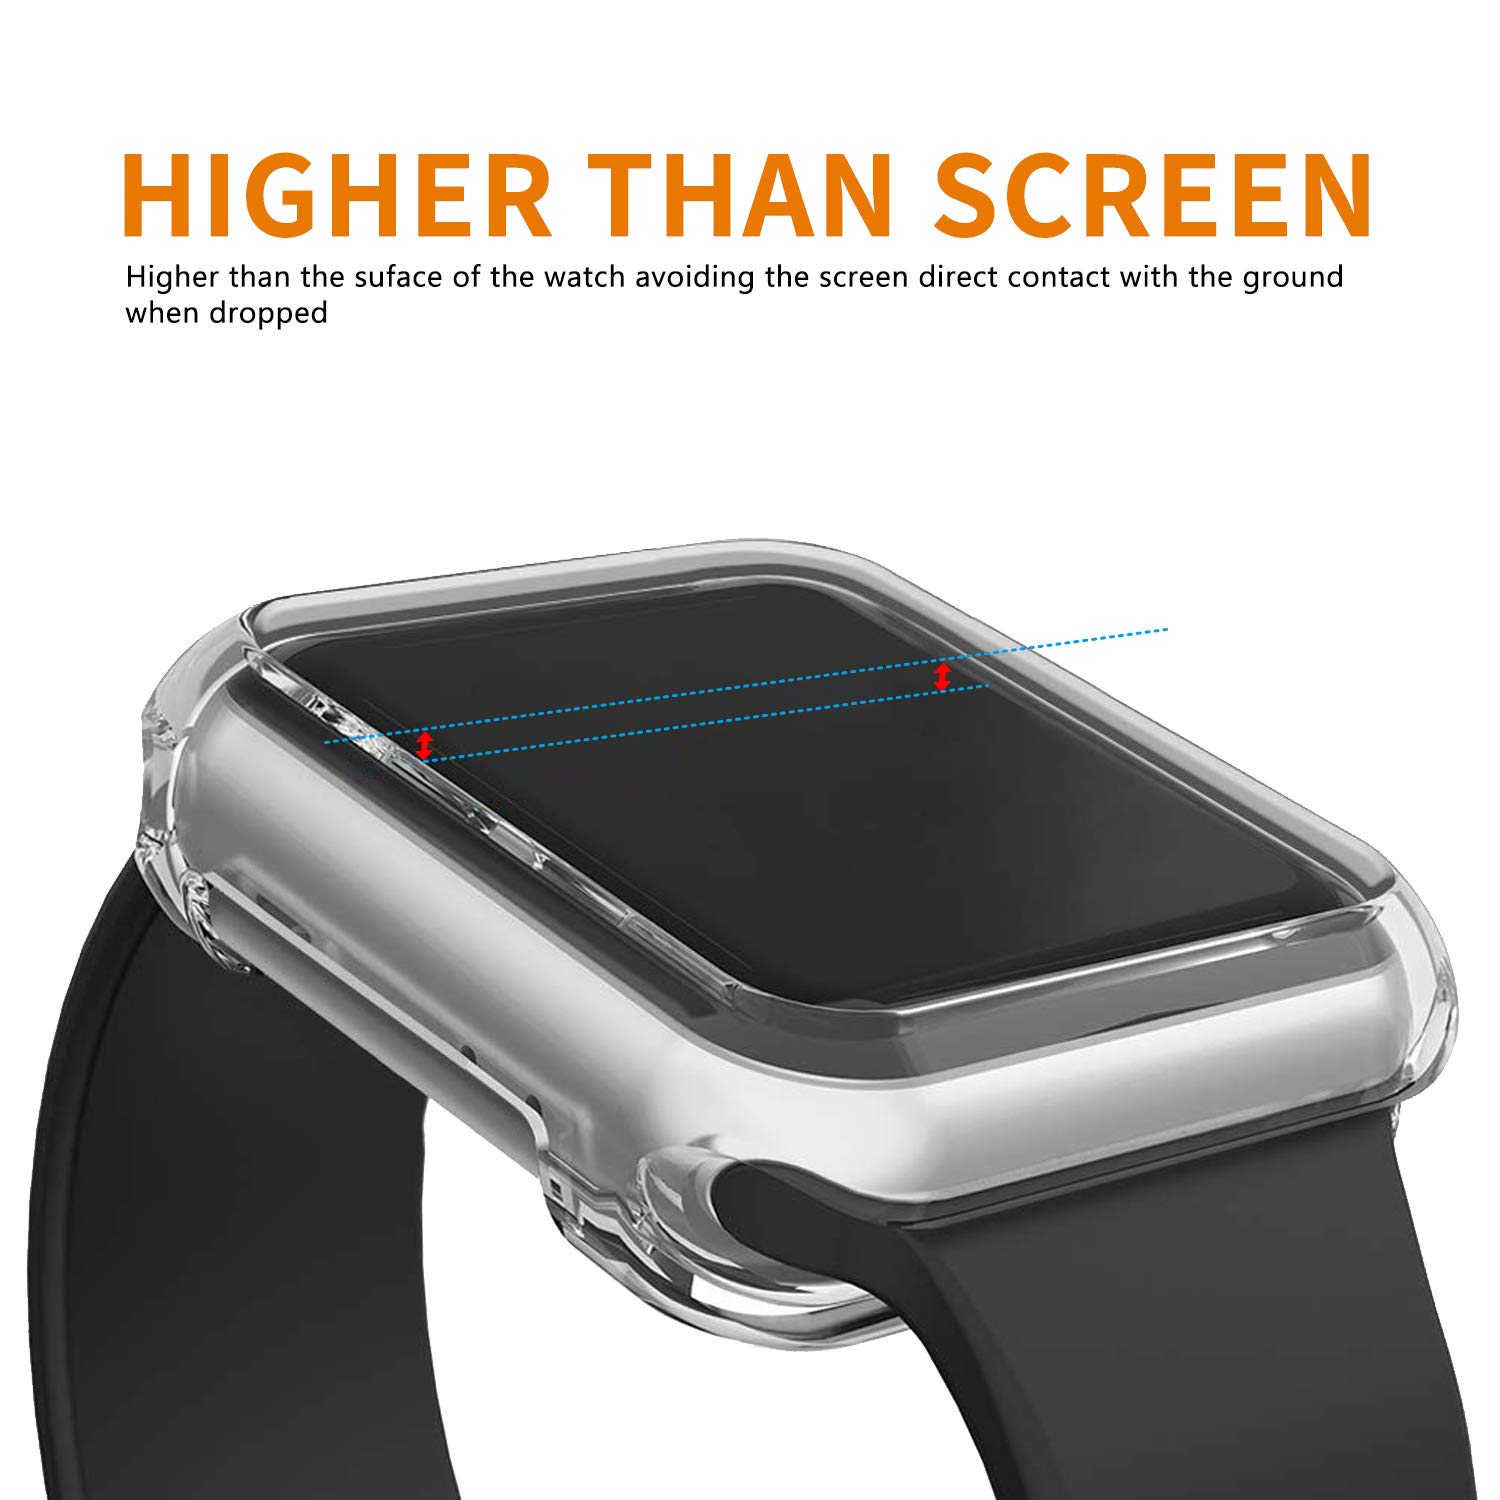 VODKE Compatible with Apple Watch Case Series 4 44mm, Soft TPU Watch Bumper Case Cover Protector Compatible with iWatch Series 4 by VODKE (Image #4)